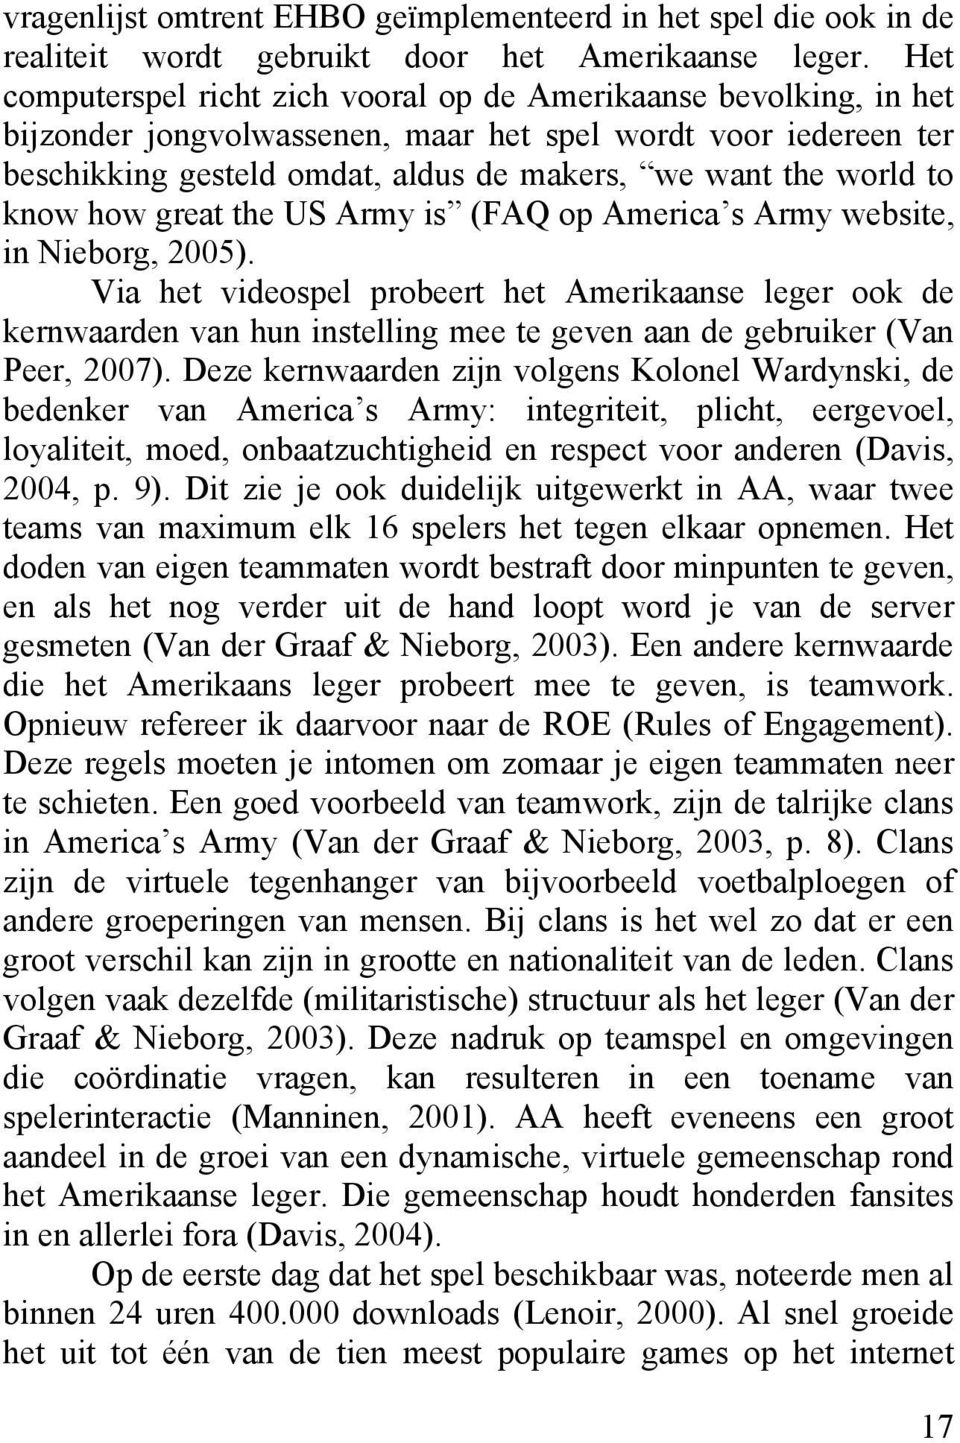 to know how great the US Army is (FAQ op America s Army website, in Nieborg, 2005).